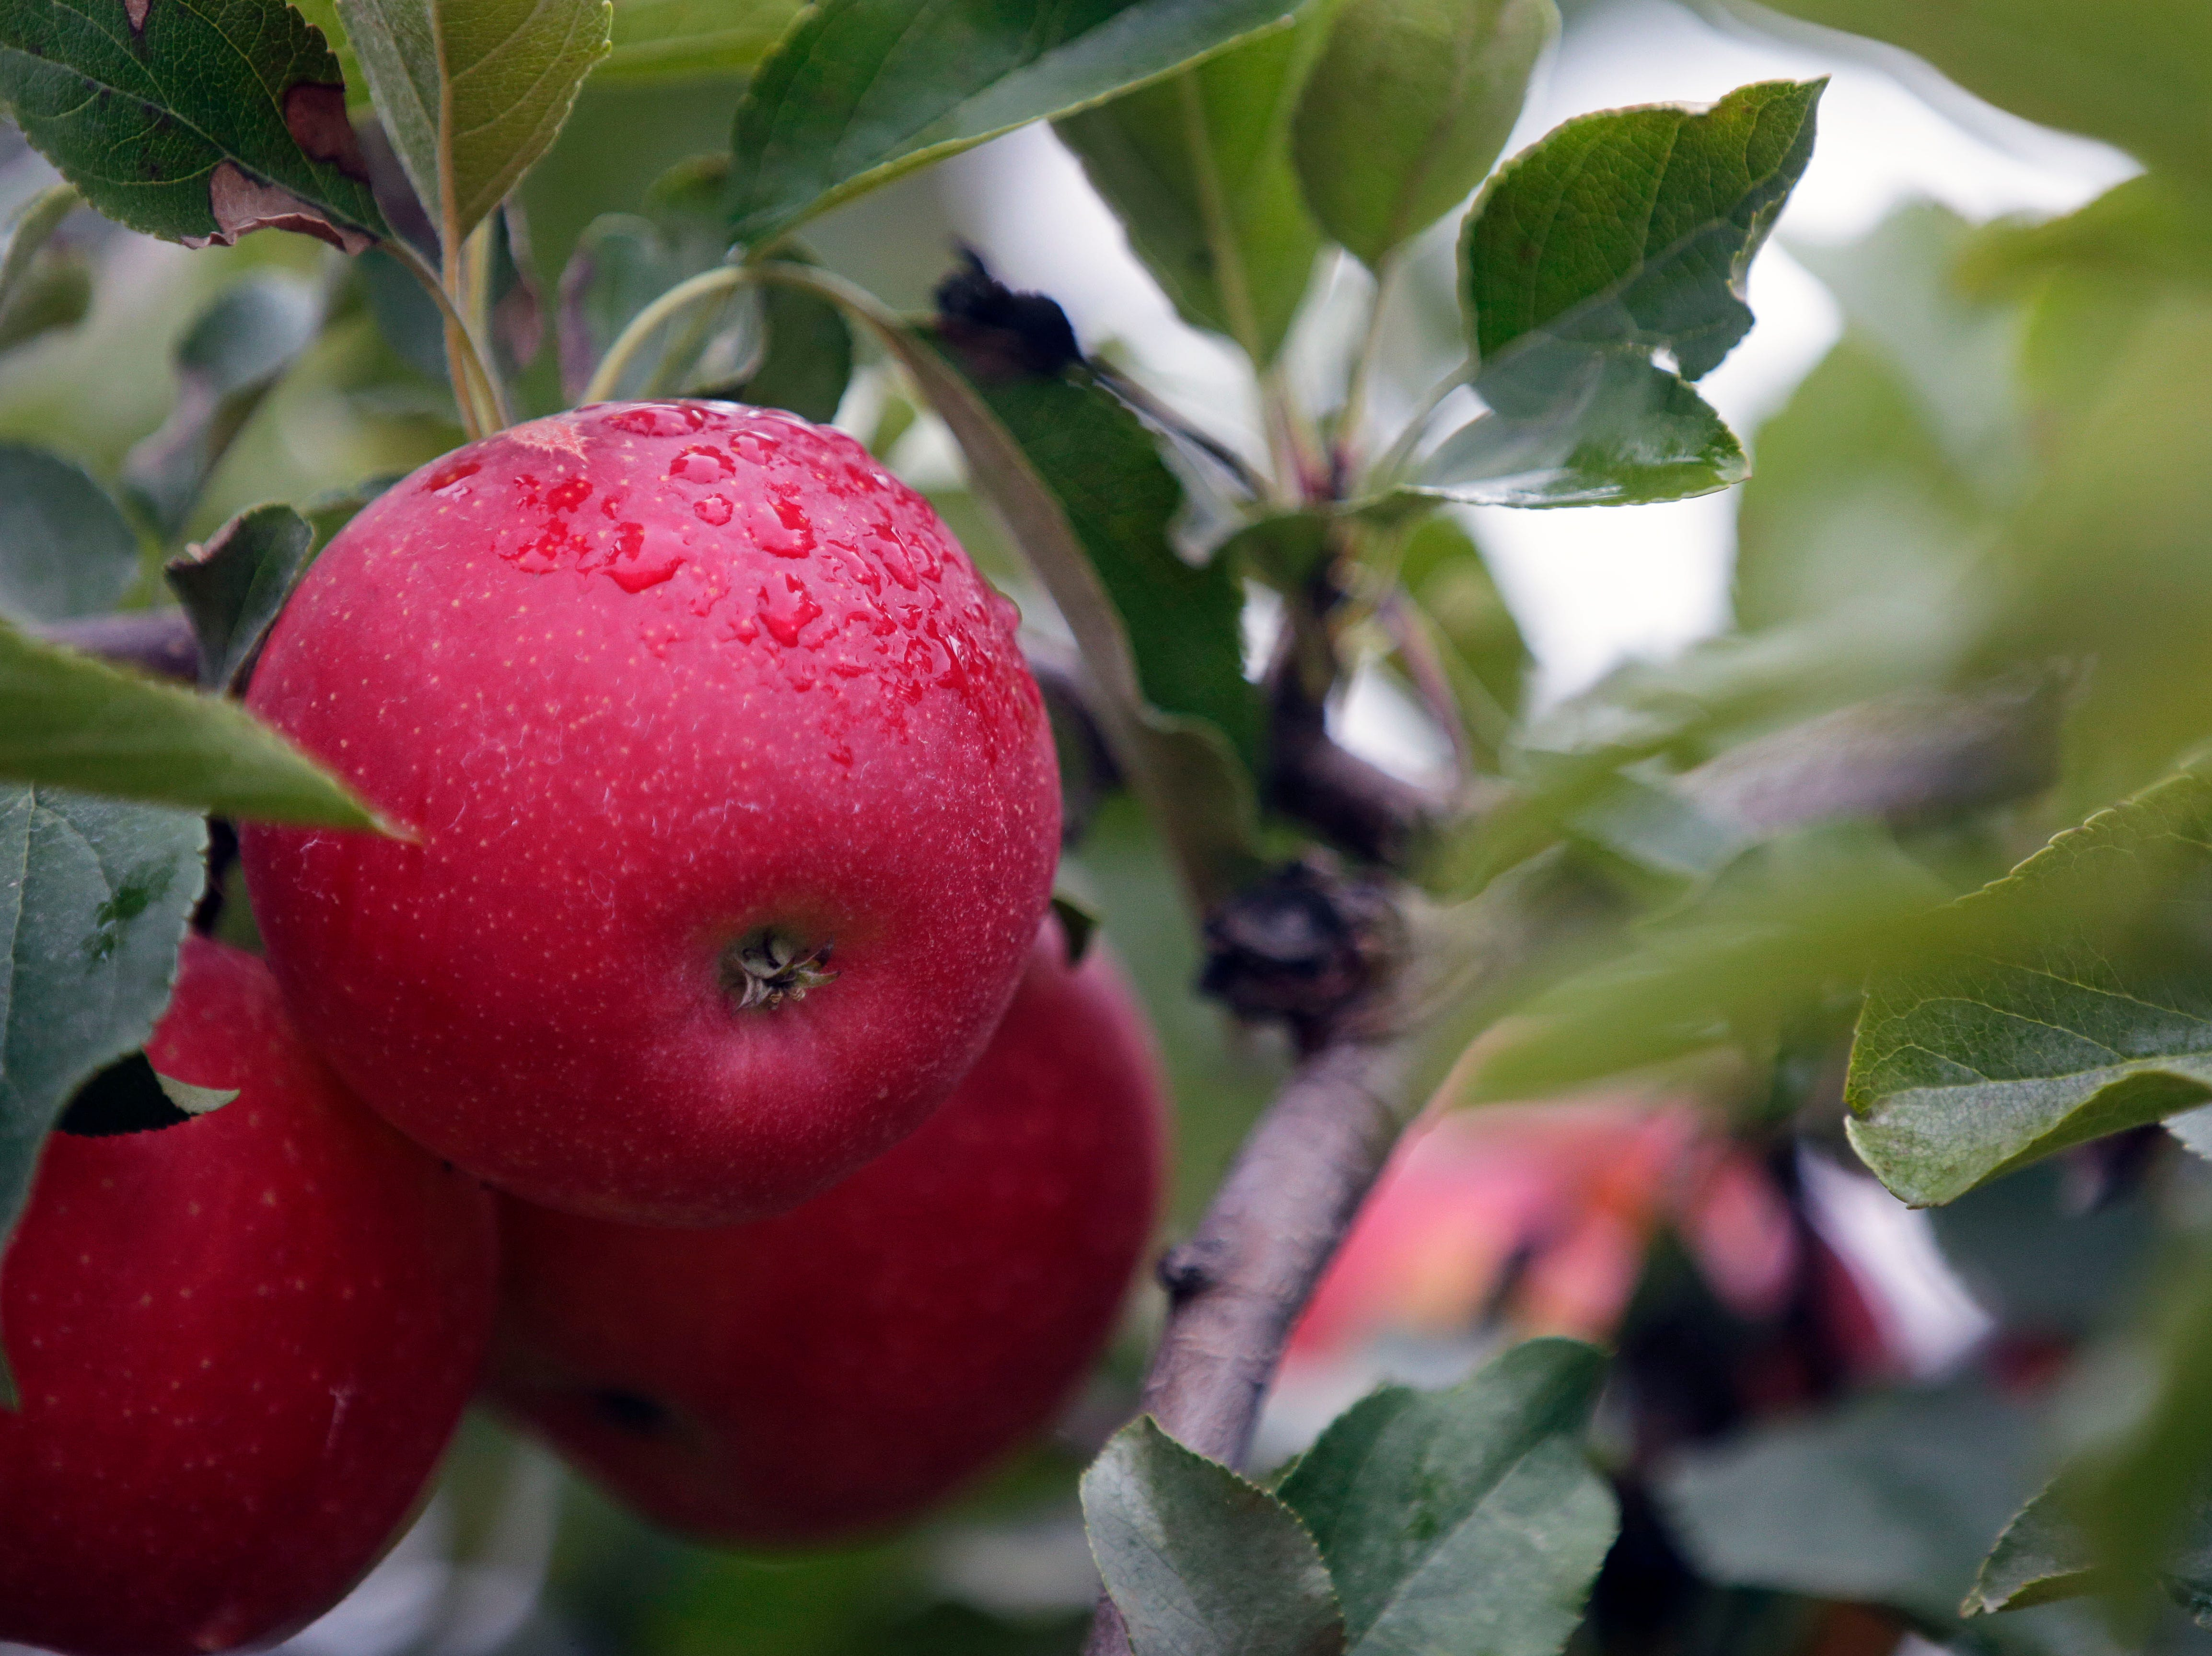 Cool and damp weather was just right for picking apples Sunday, September 30, 2018, at Star Orchard in Kaukauna, Wis.Ron Page/USA TODAY NETWORK-Wisconsin